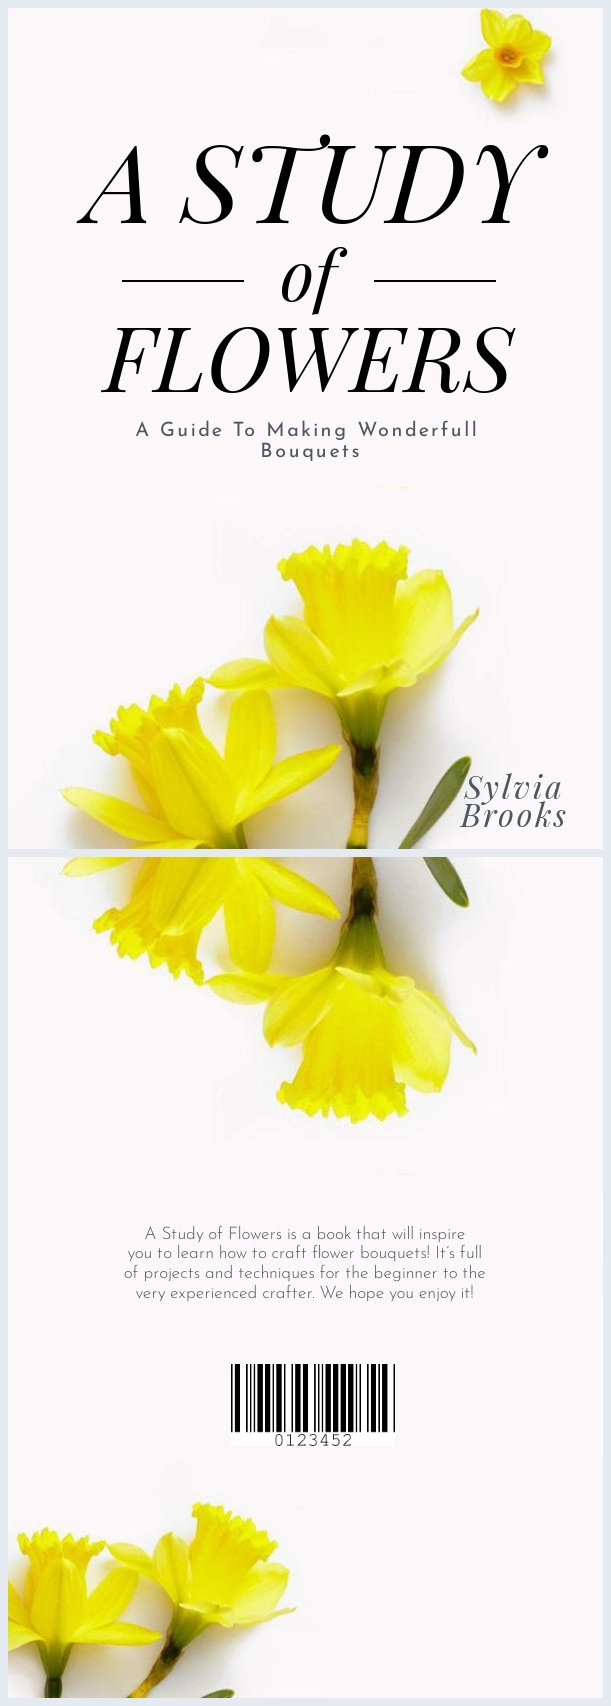 Yellow Flowers Book Cover